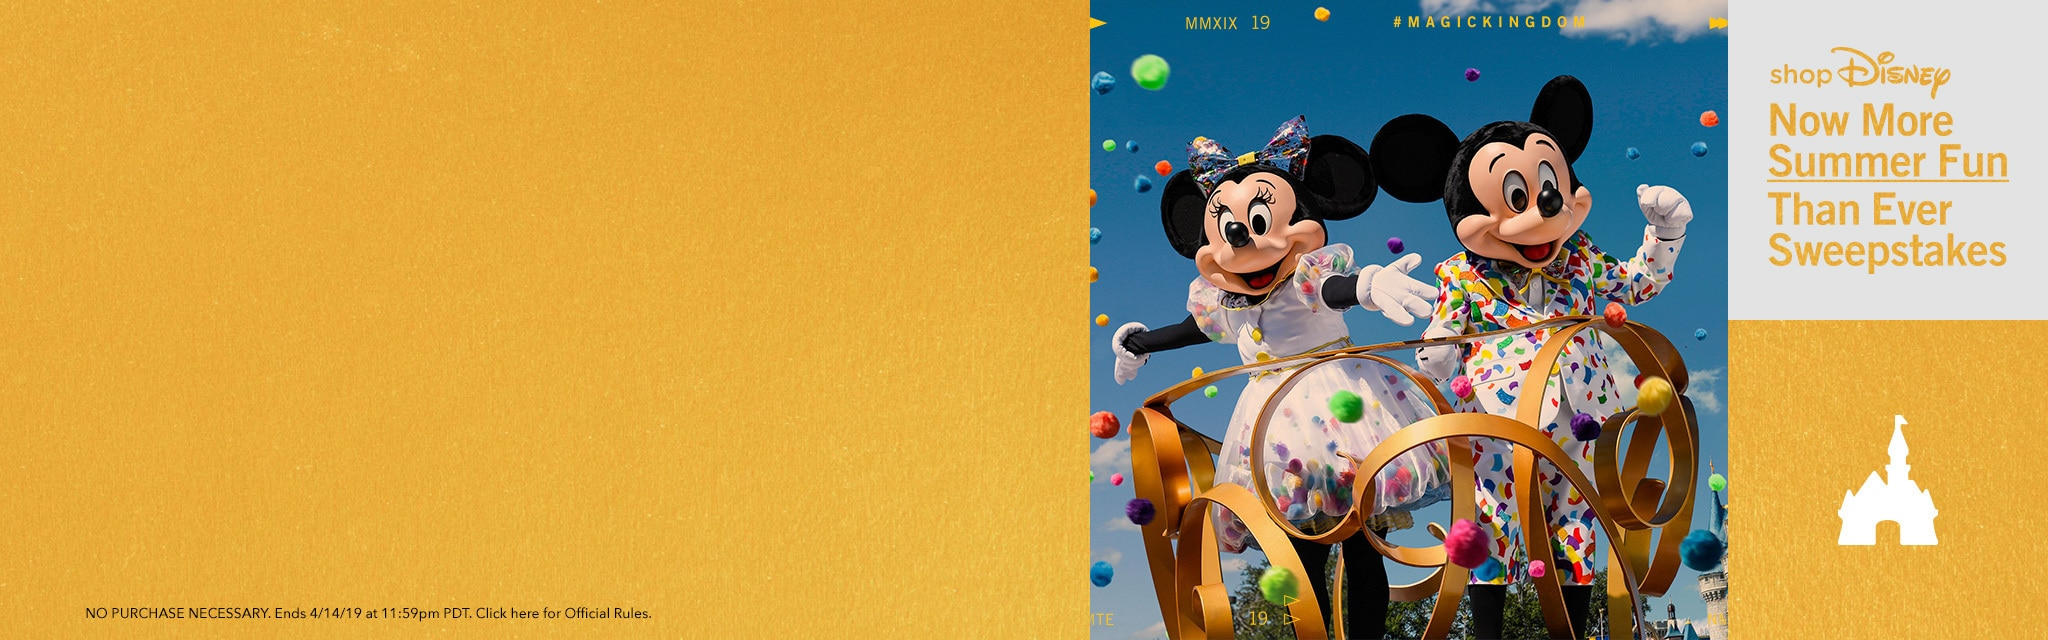 shopDisney Now More Than Ever Sweepstakes